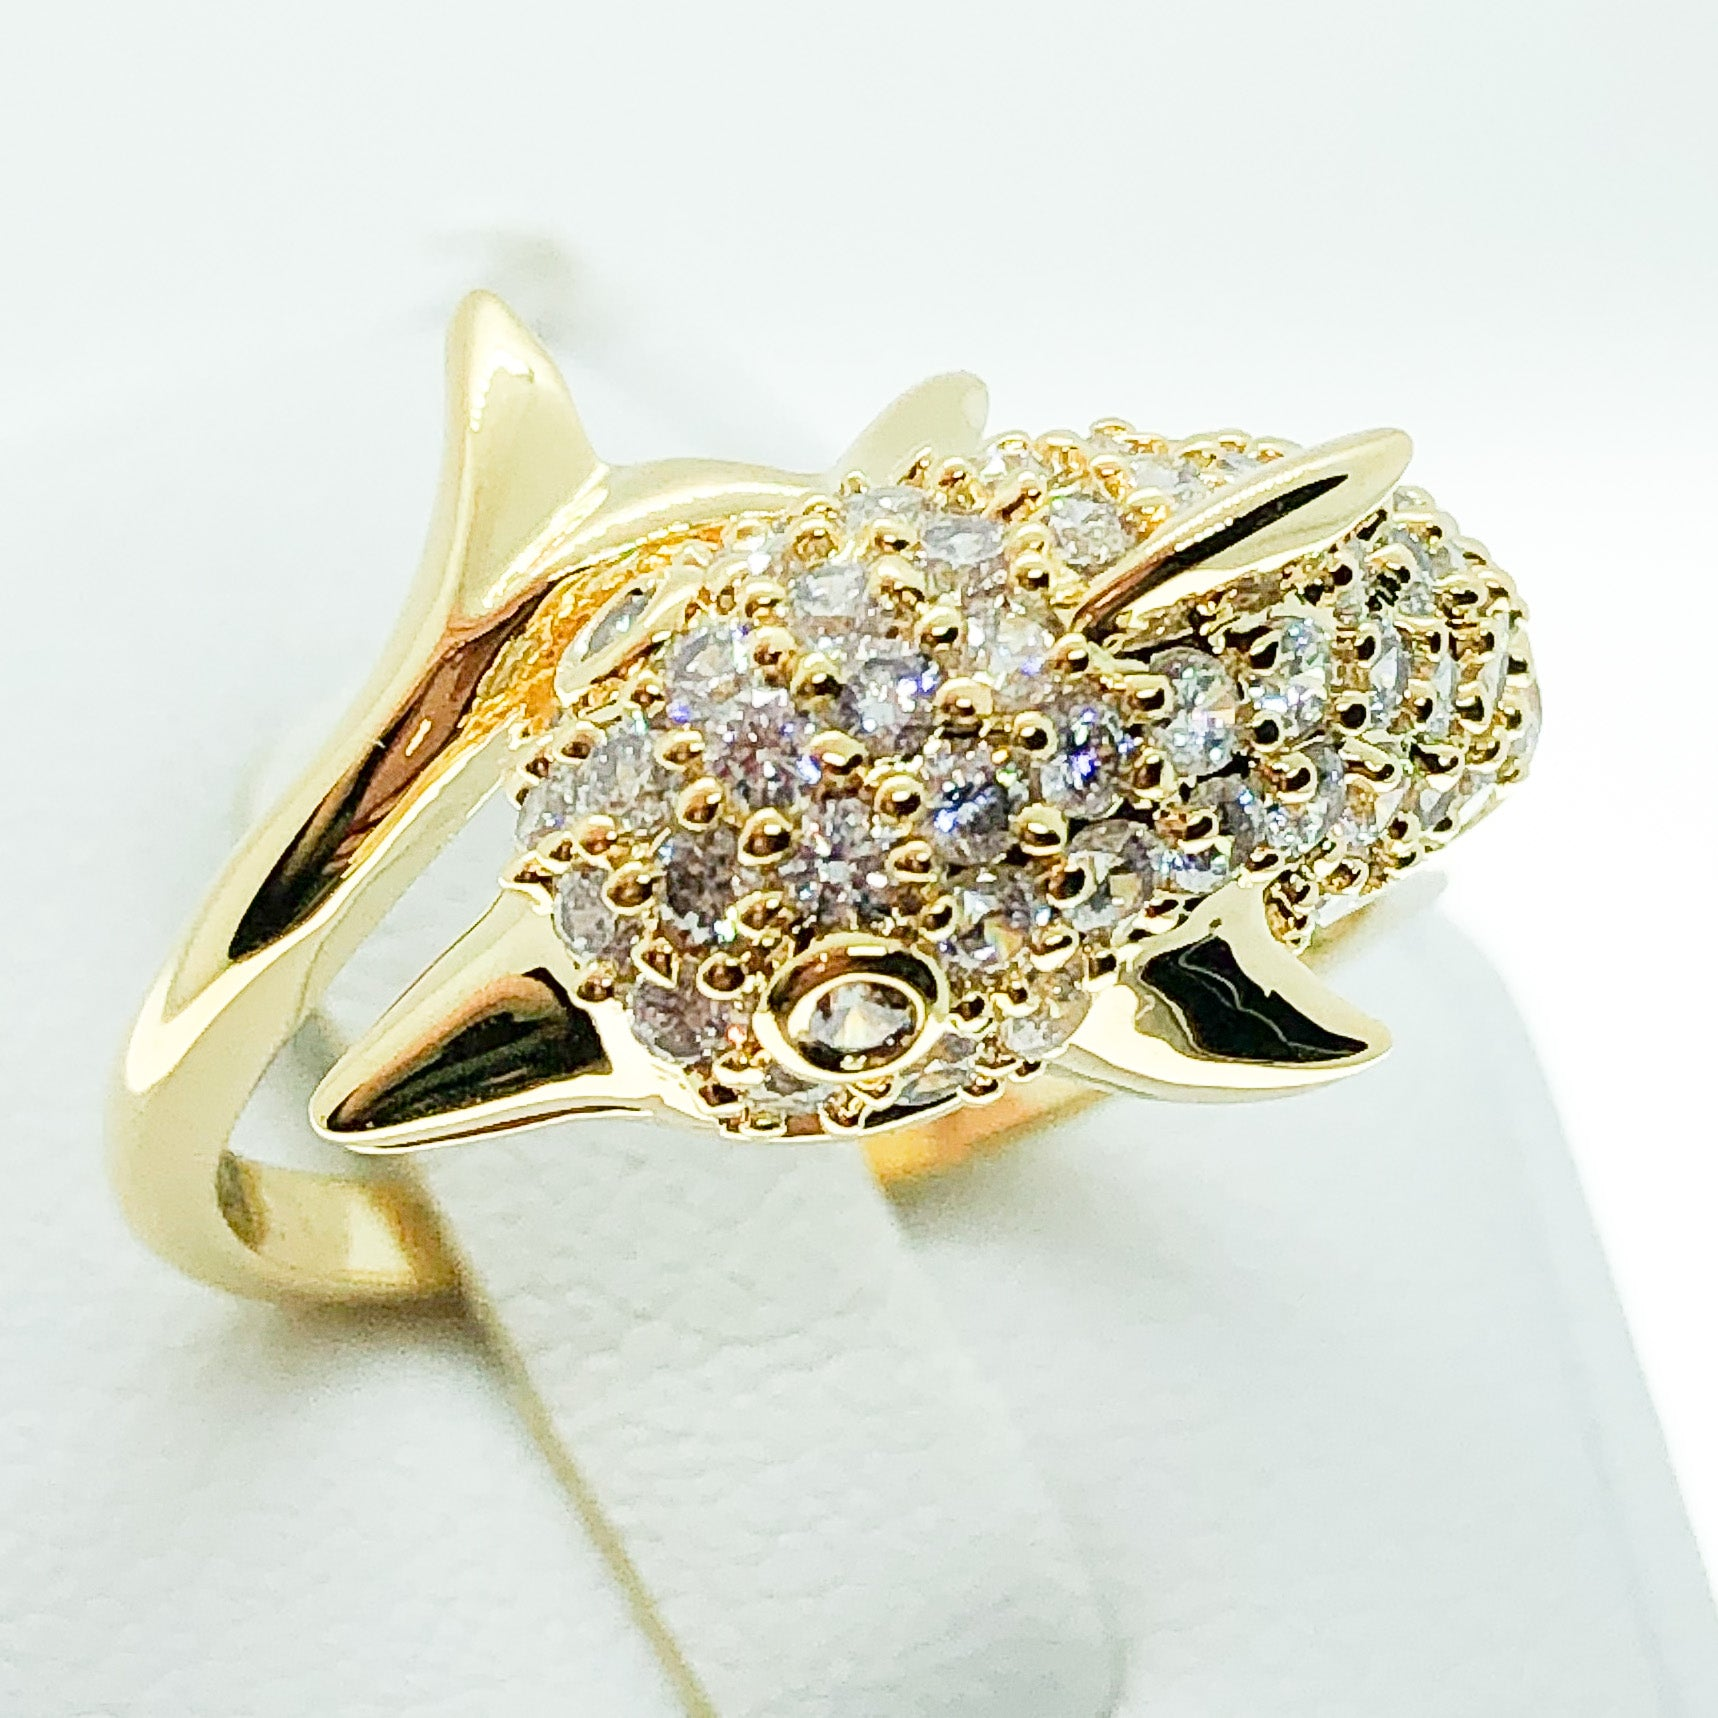 ID:R4973 Women 18K Yellow Gold GF Fashion Jewelry Marvelous Unique Dolphin Design Cluster Cocktail Gemstone Ring